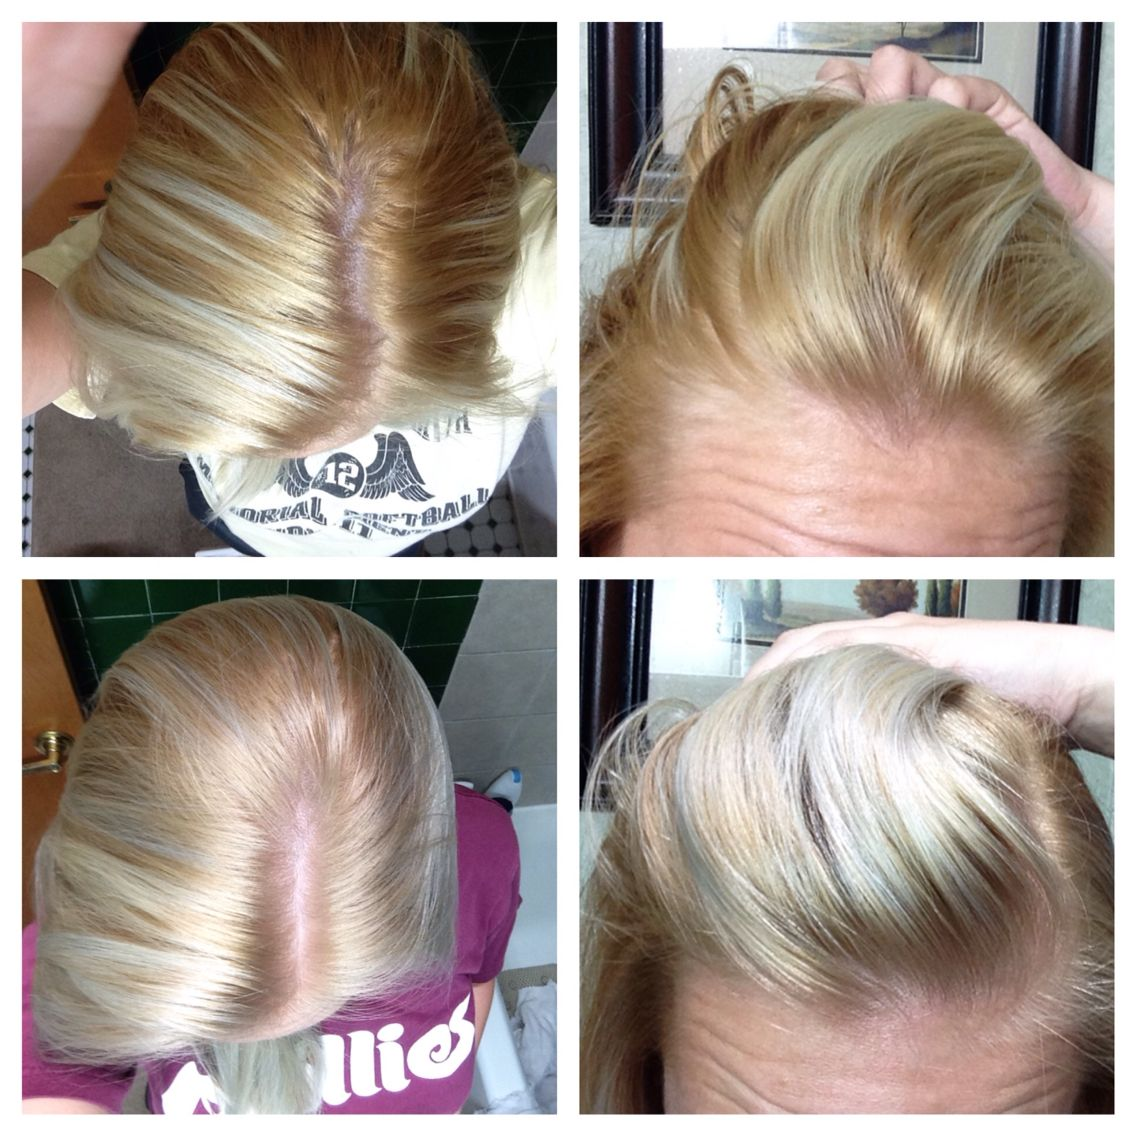 Wella T14 Toner Diy Before After This Is My Experience Followed Directions On Box Except Only Left O Diy Hair Toner Wella Hair Color Temporary Hair Dye Diy